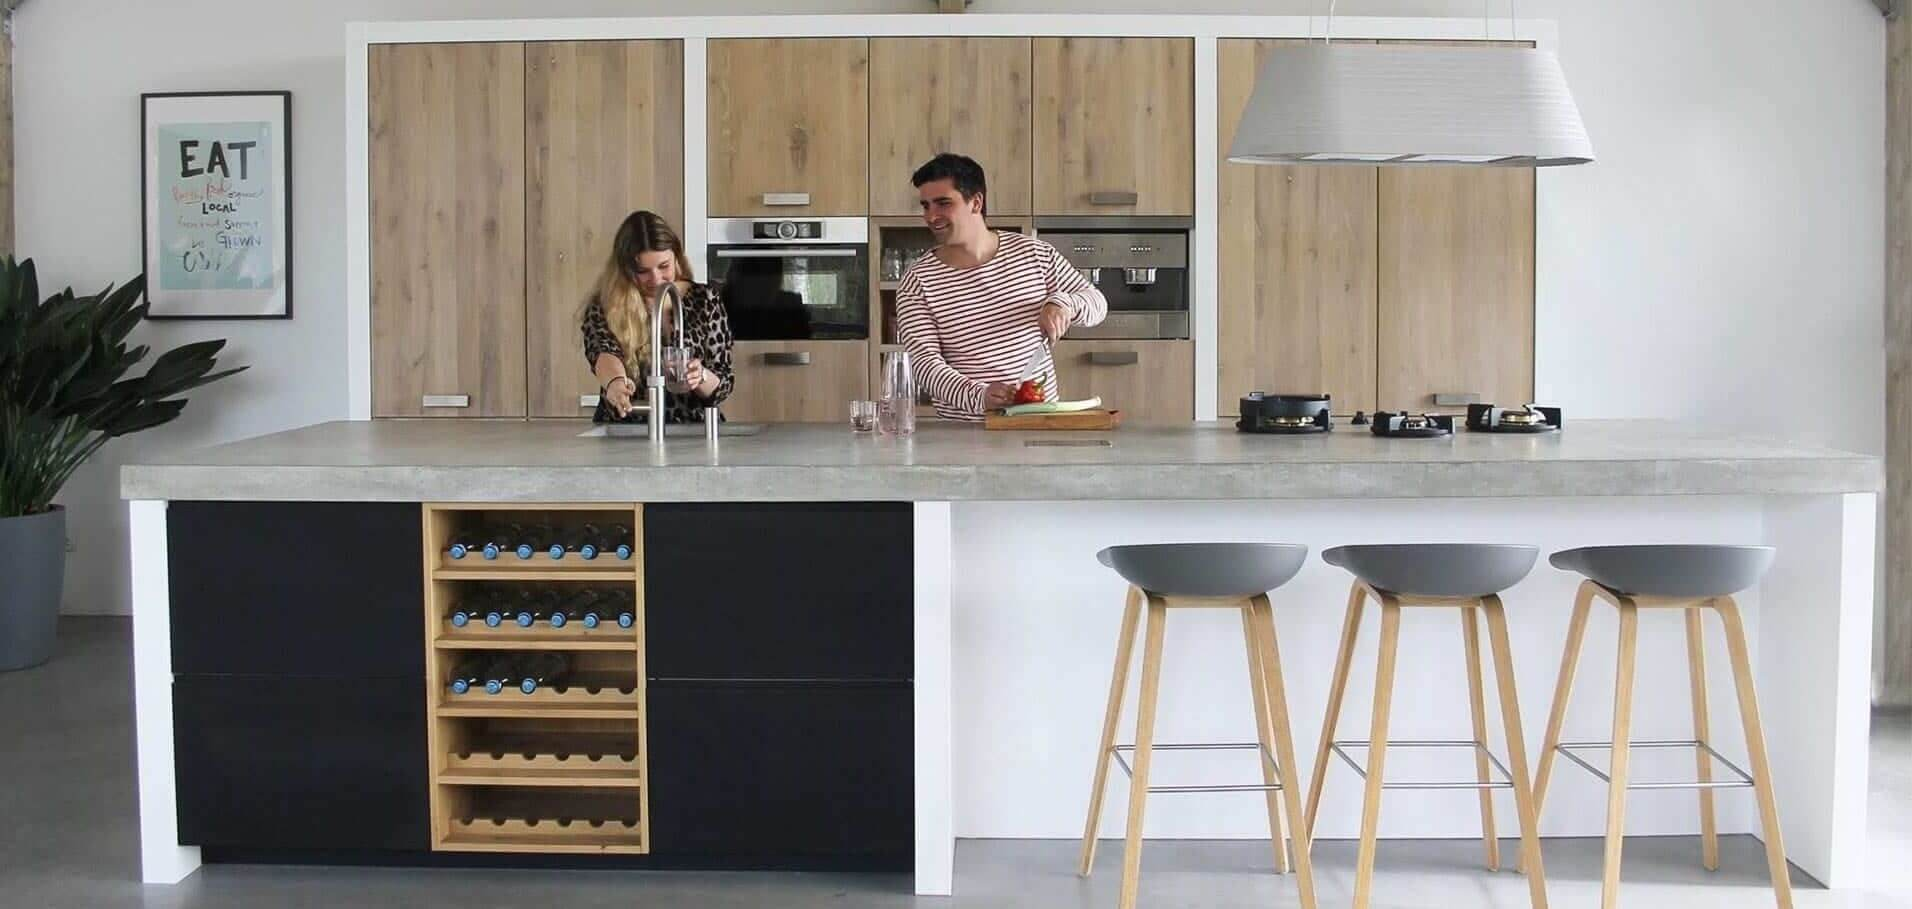 Alternative Zu Ikea Küchen Koak Design Makes Wooden Fronts For Ikea Metod Kitchens | Koakdesign.com